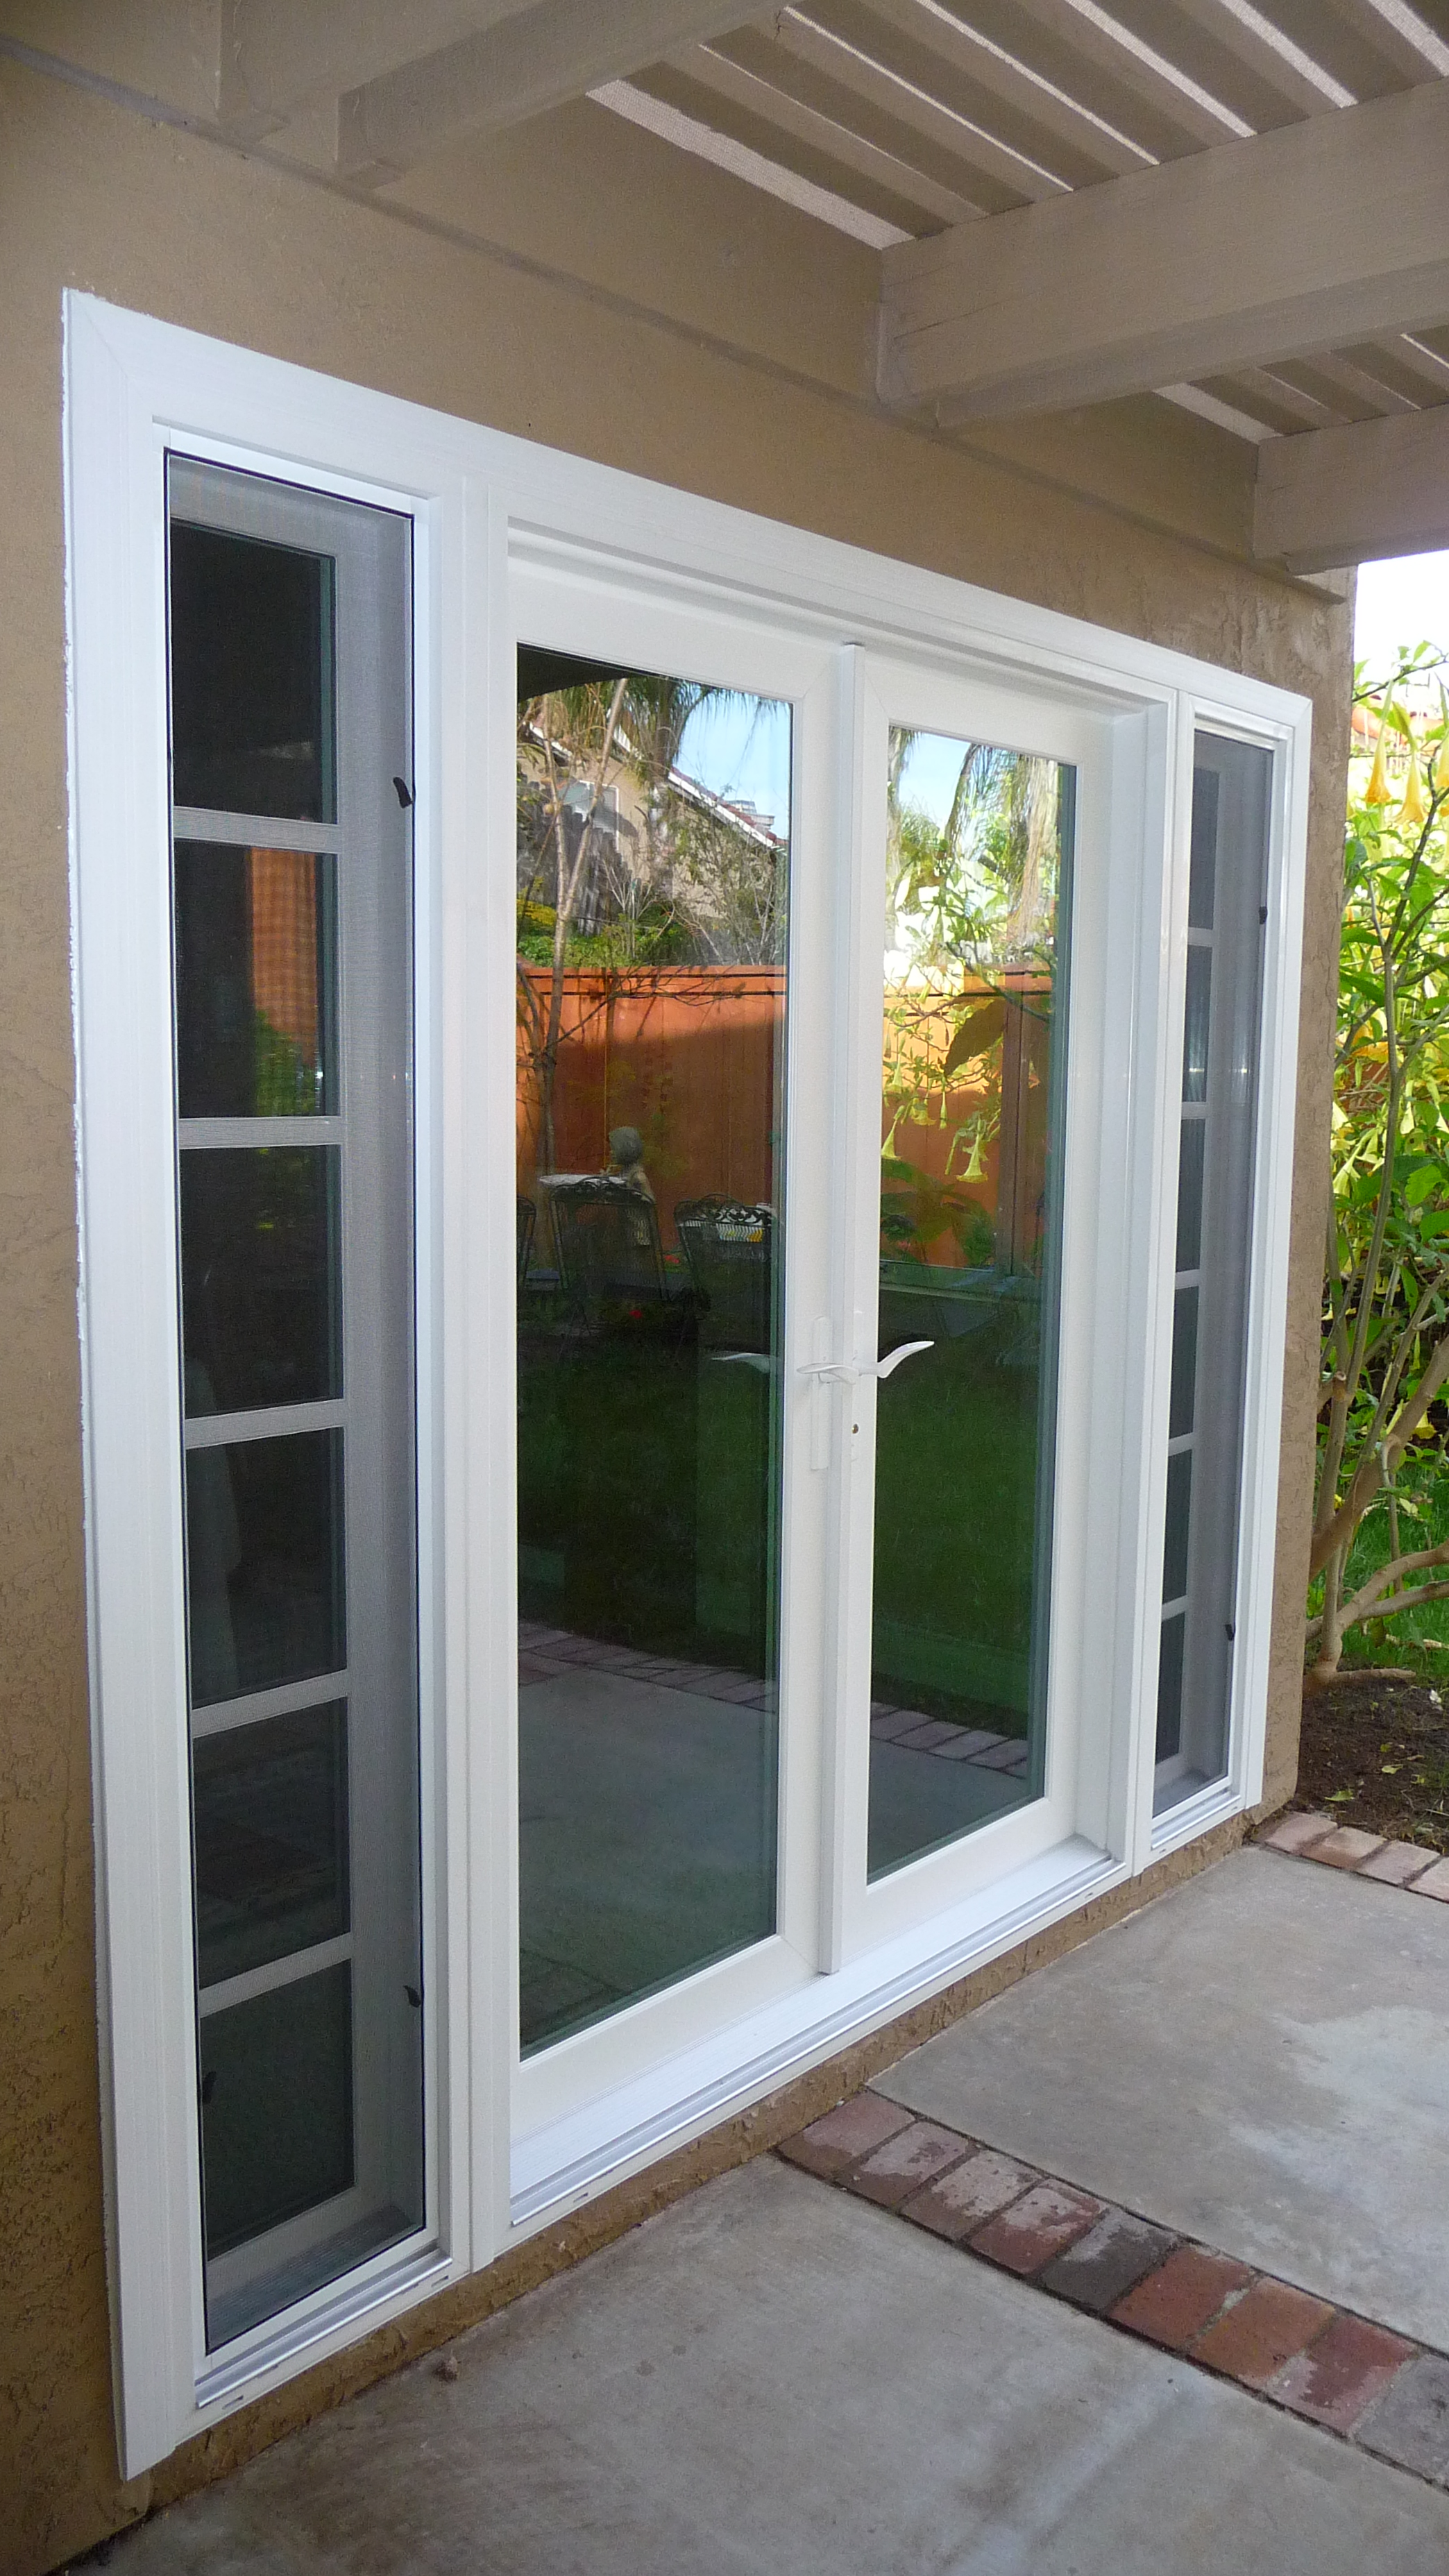 3712 #8E883D French Doors Patio Sidelites Coughlin Windows And Doors pic Patio Doors With Side Windows 44912088